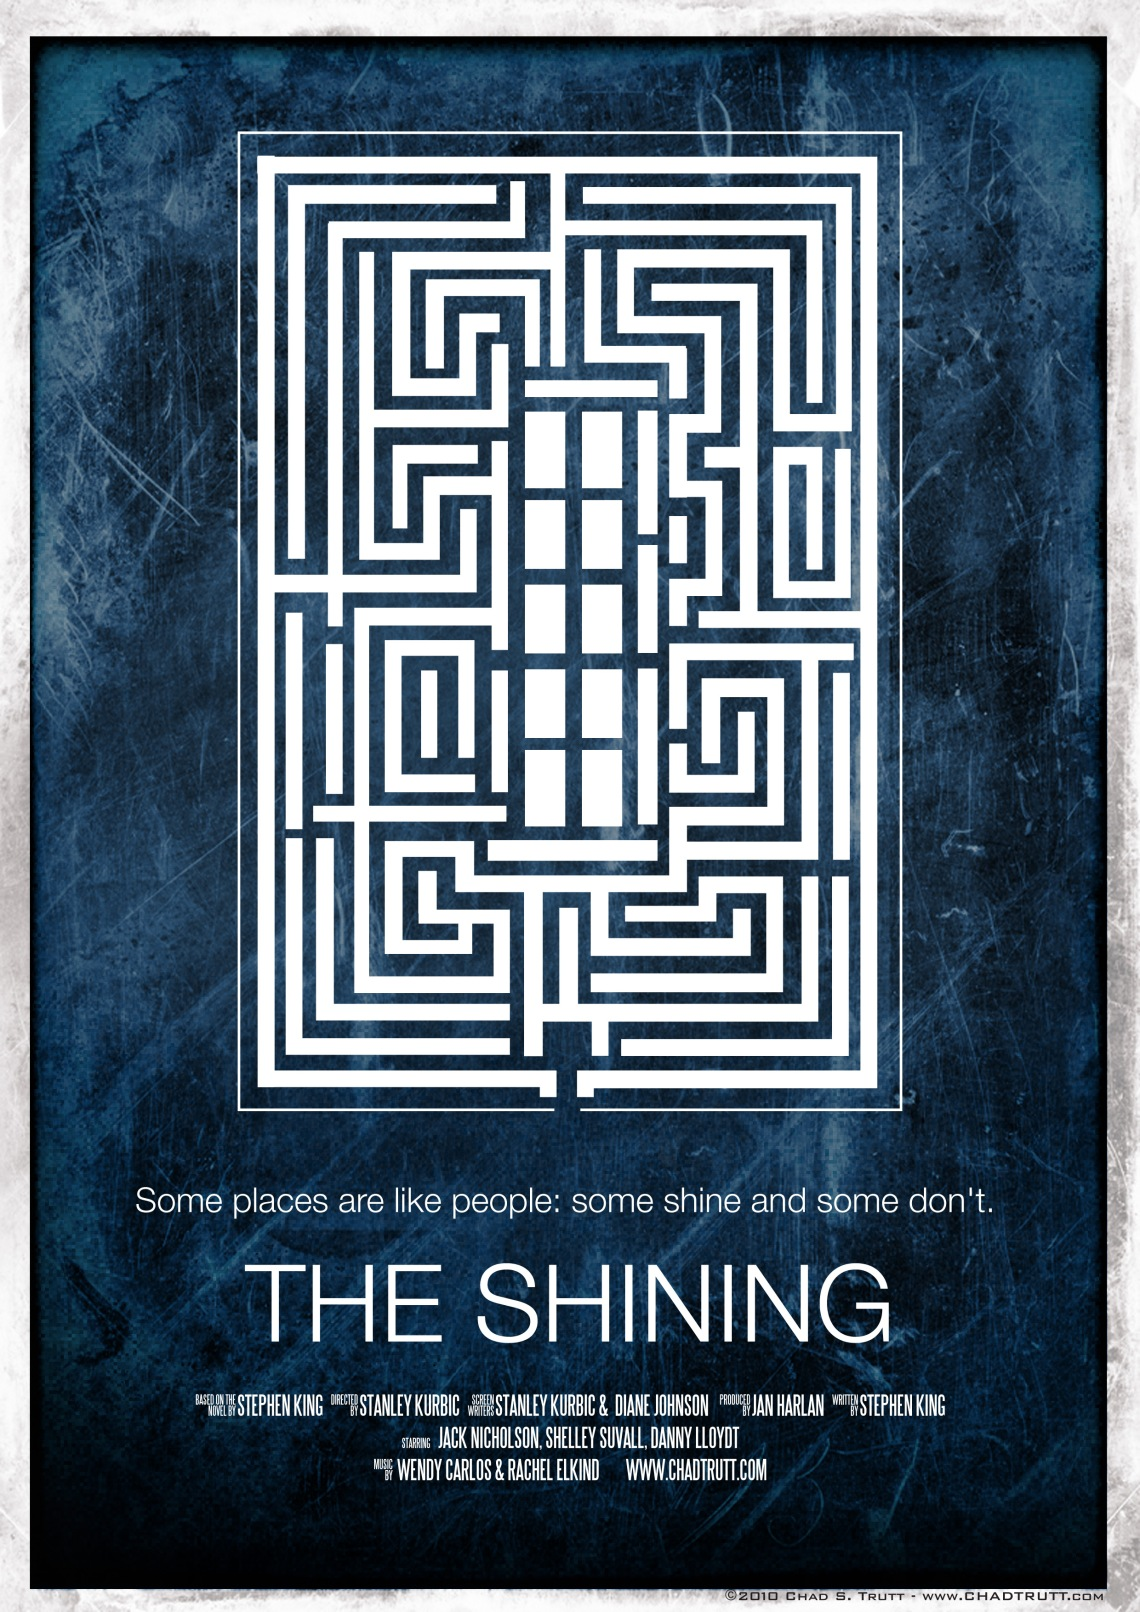 the_shining_concept_poster_by_chadtrutt-d31svzz